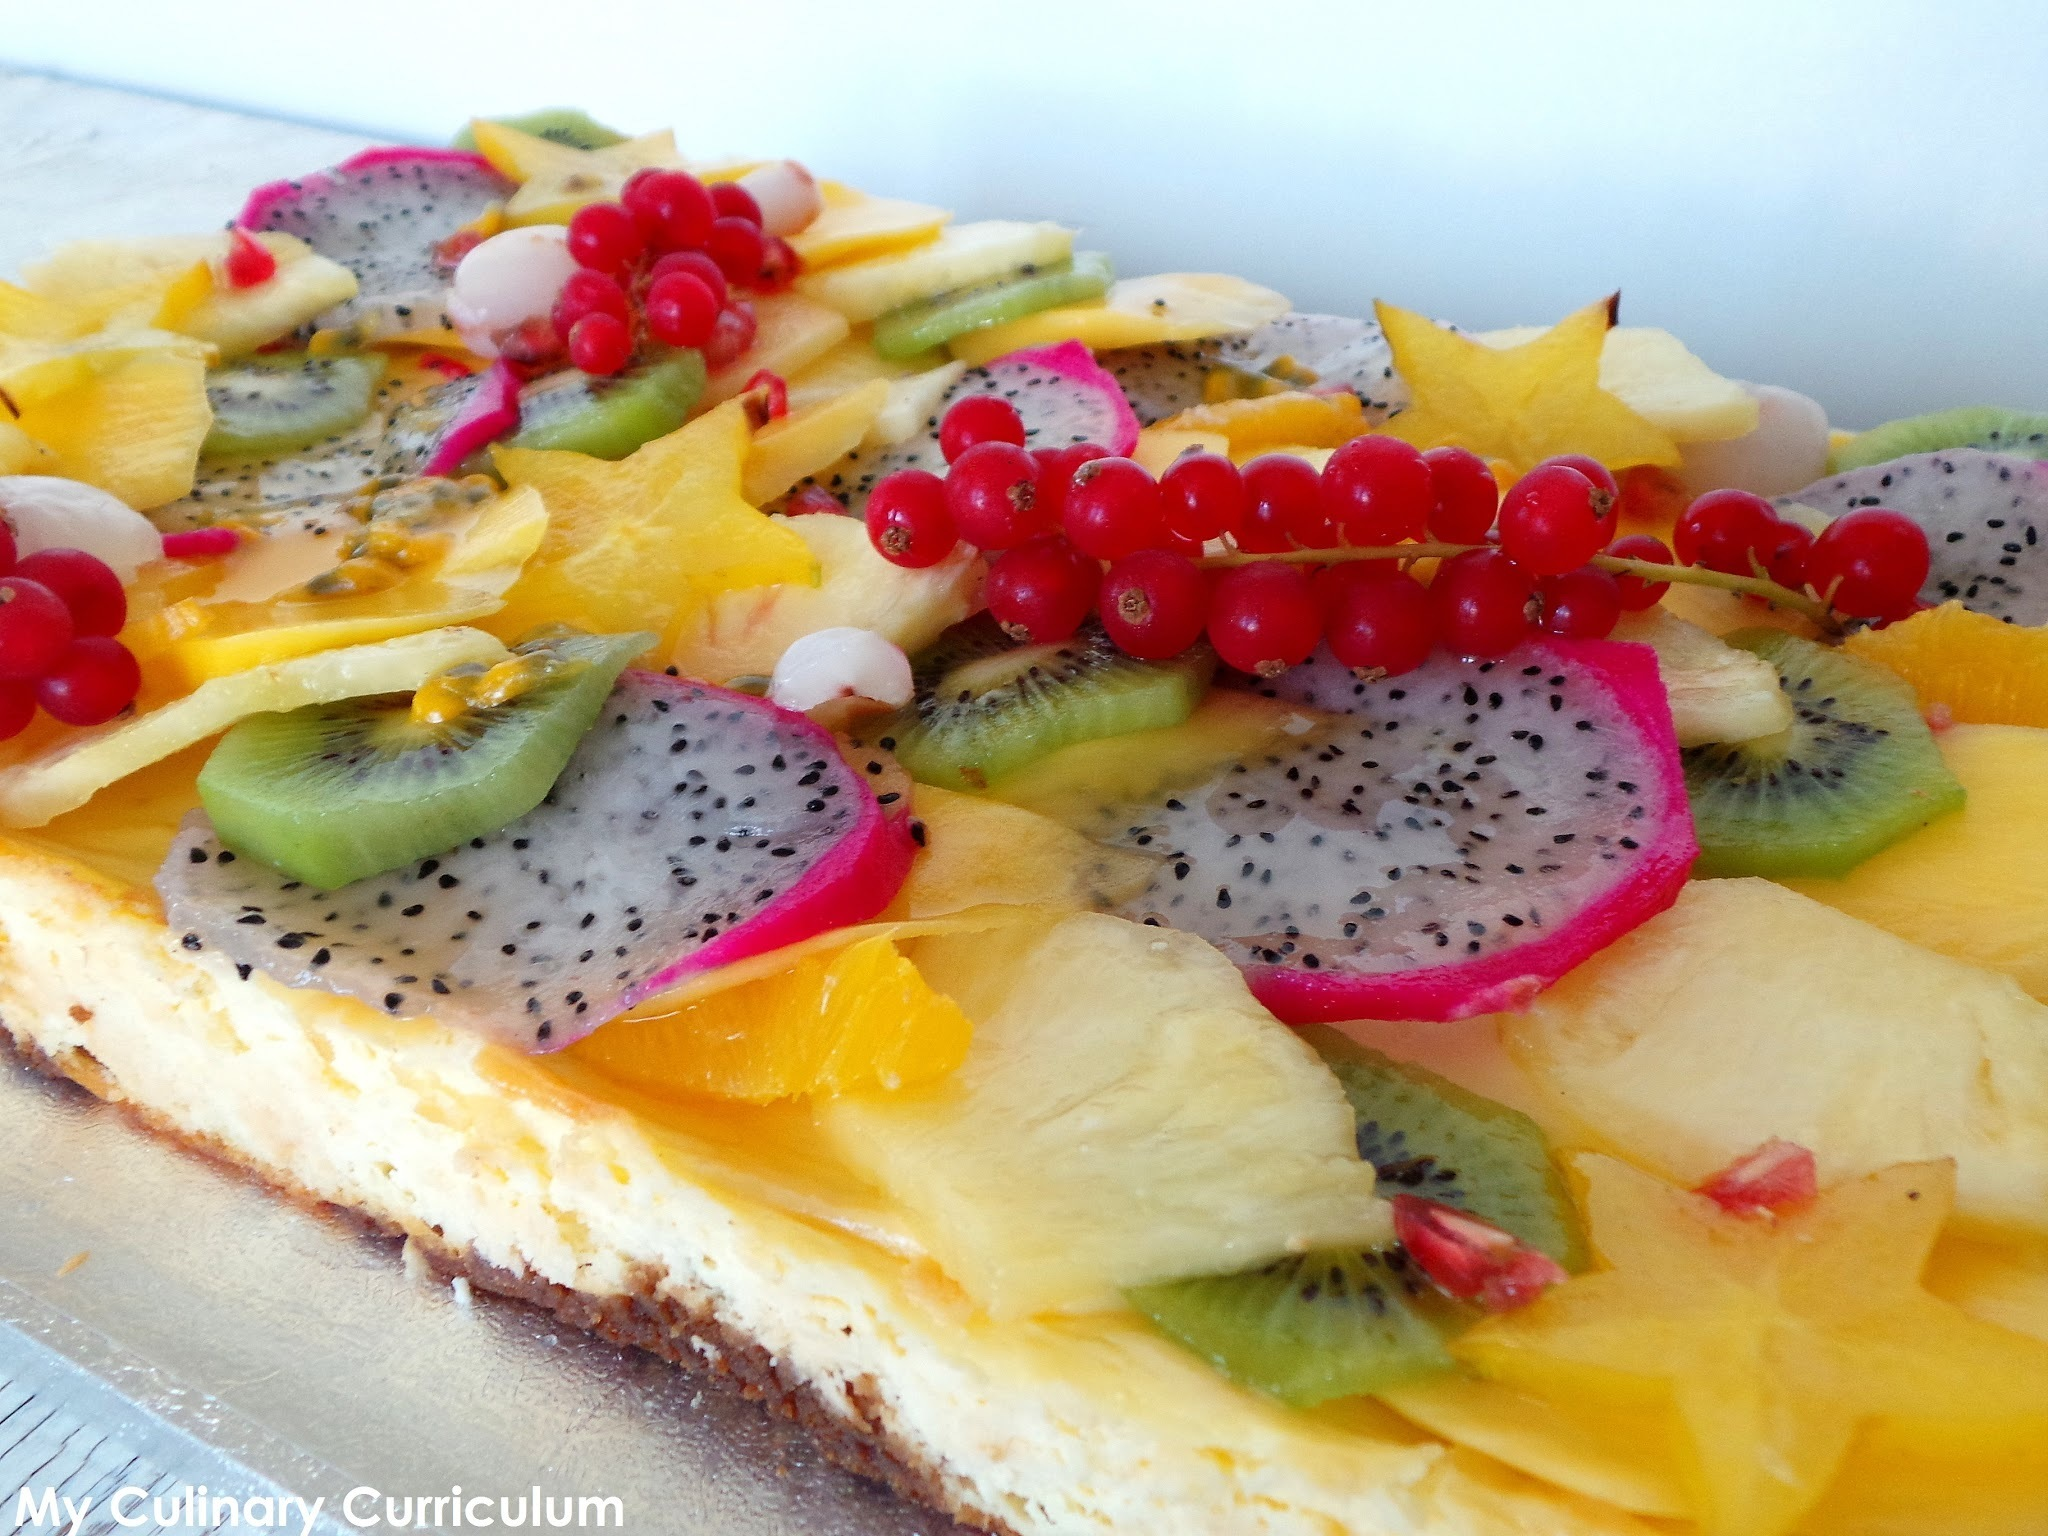 Tarte façon cheesecake au citron vert et  aux fruits exotiques (Lime cheesecake pie with exotic fruits)